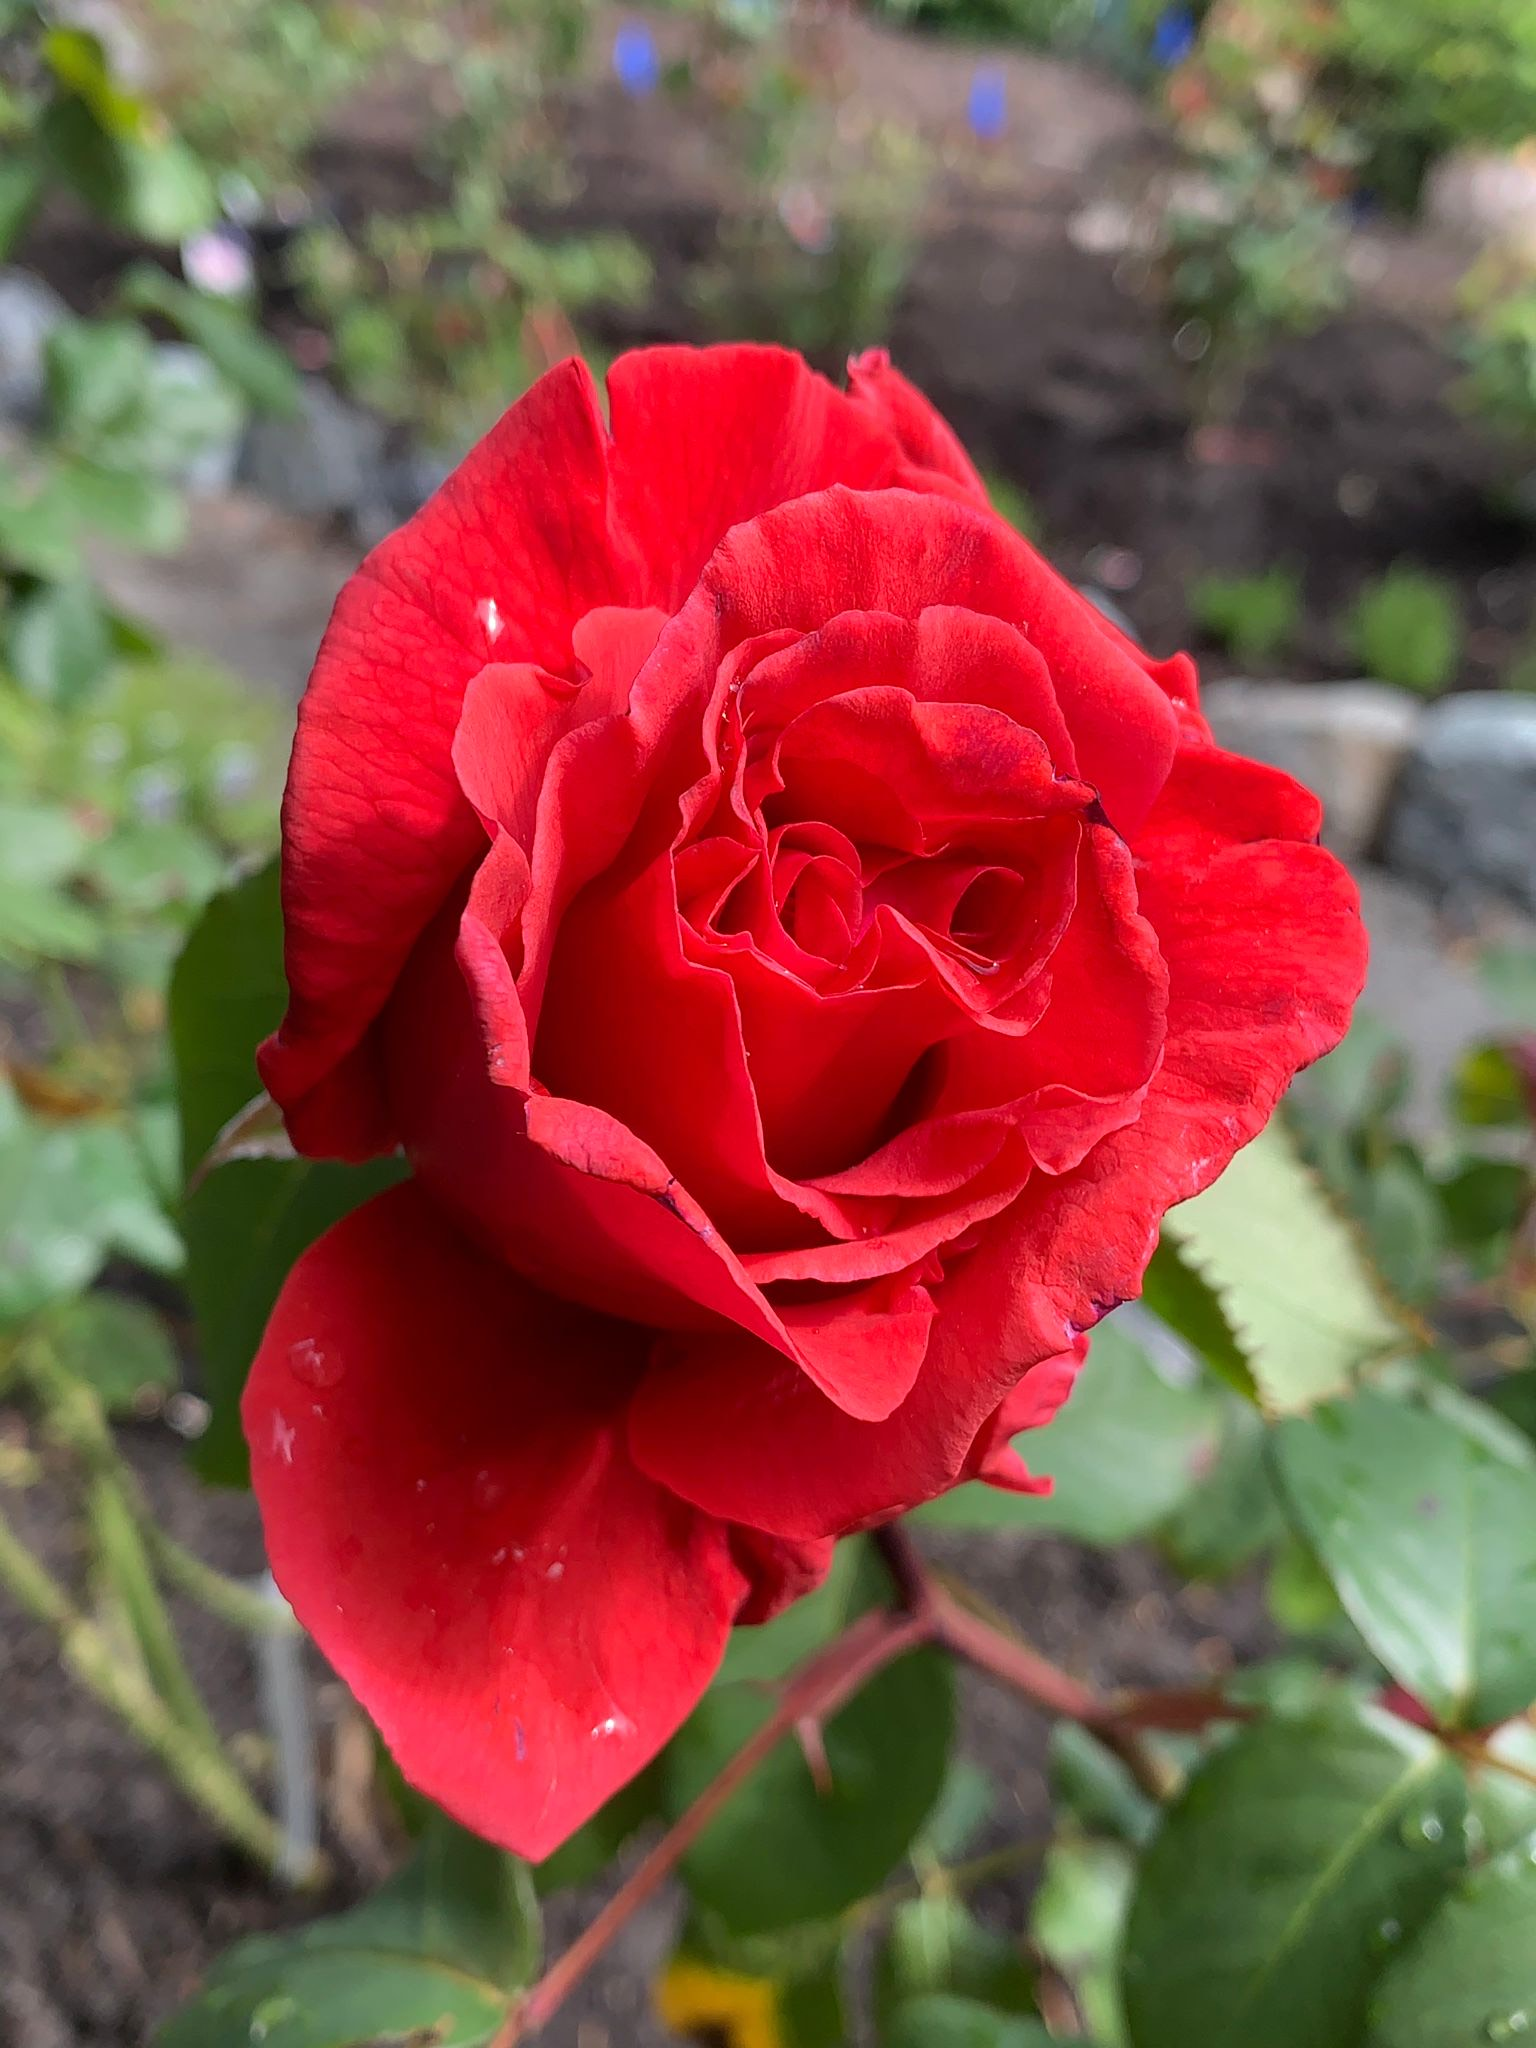 John's 'Fragrant Cloud', 'the most fragrant rose there is', he says.